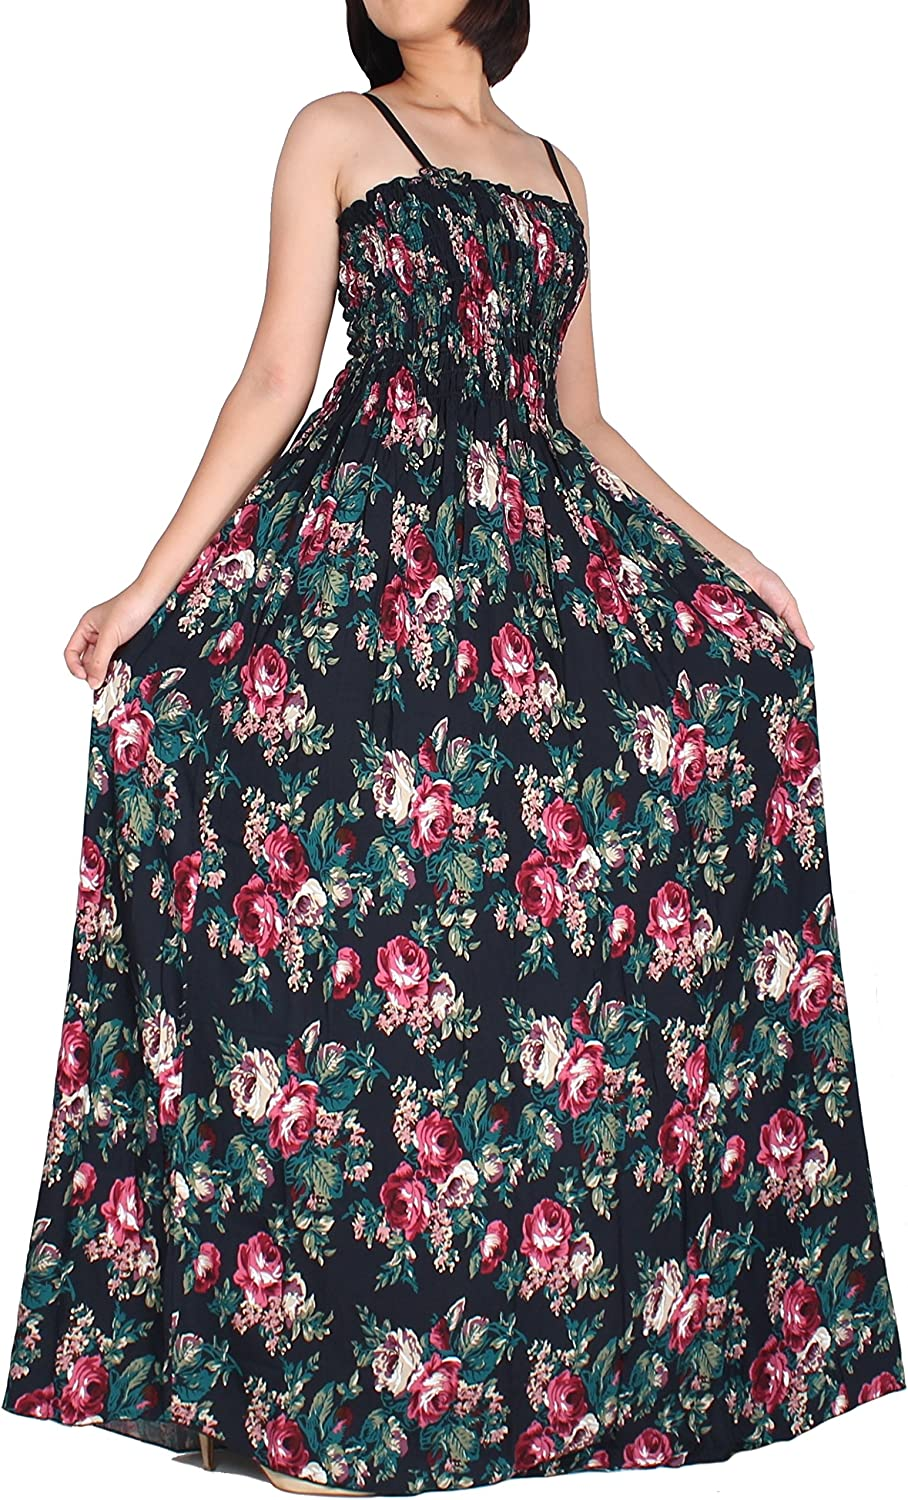 The WomenLand Women Maxi Dress Plus Size Floral Classic Vintage Look Navy Party Flare Boho